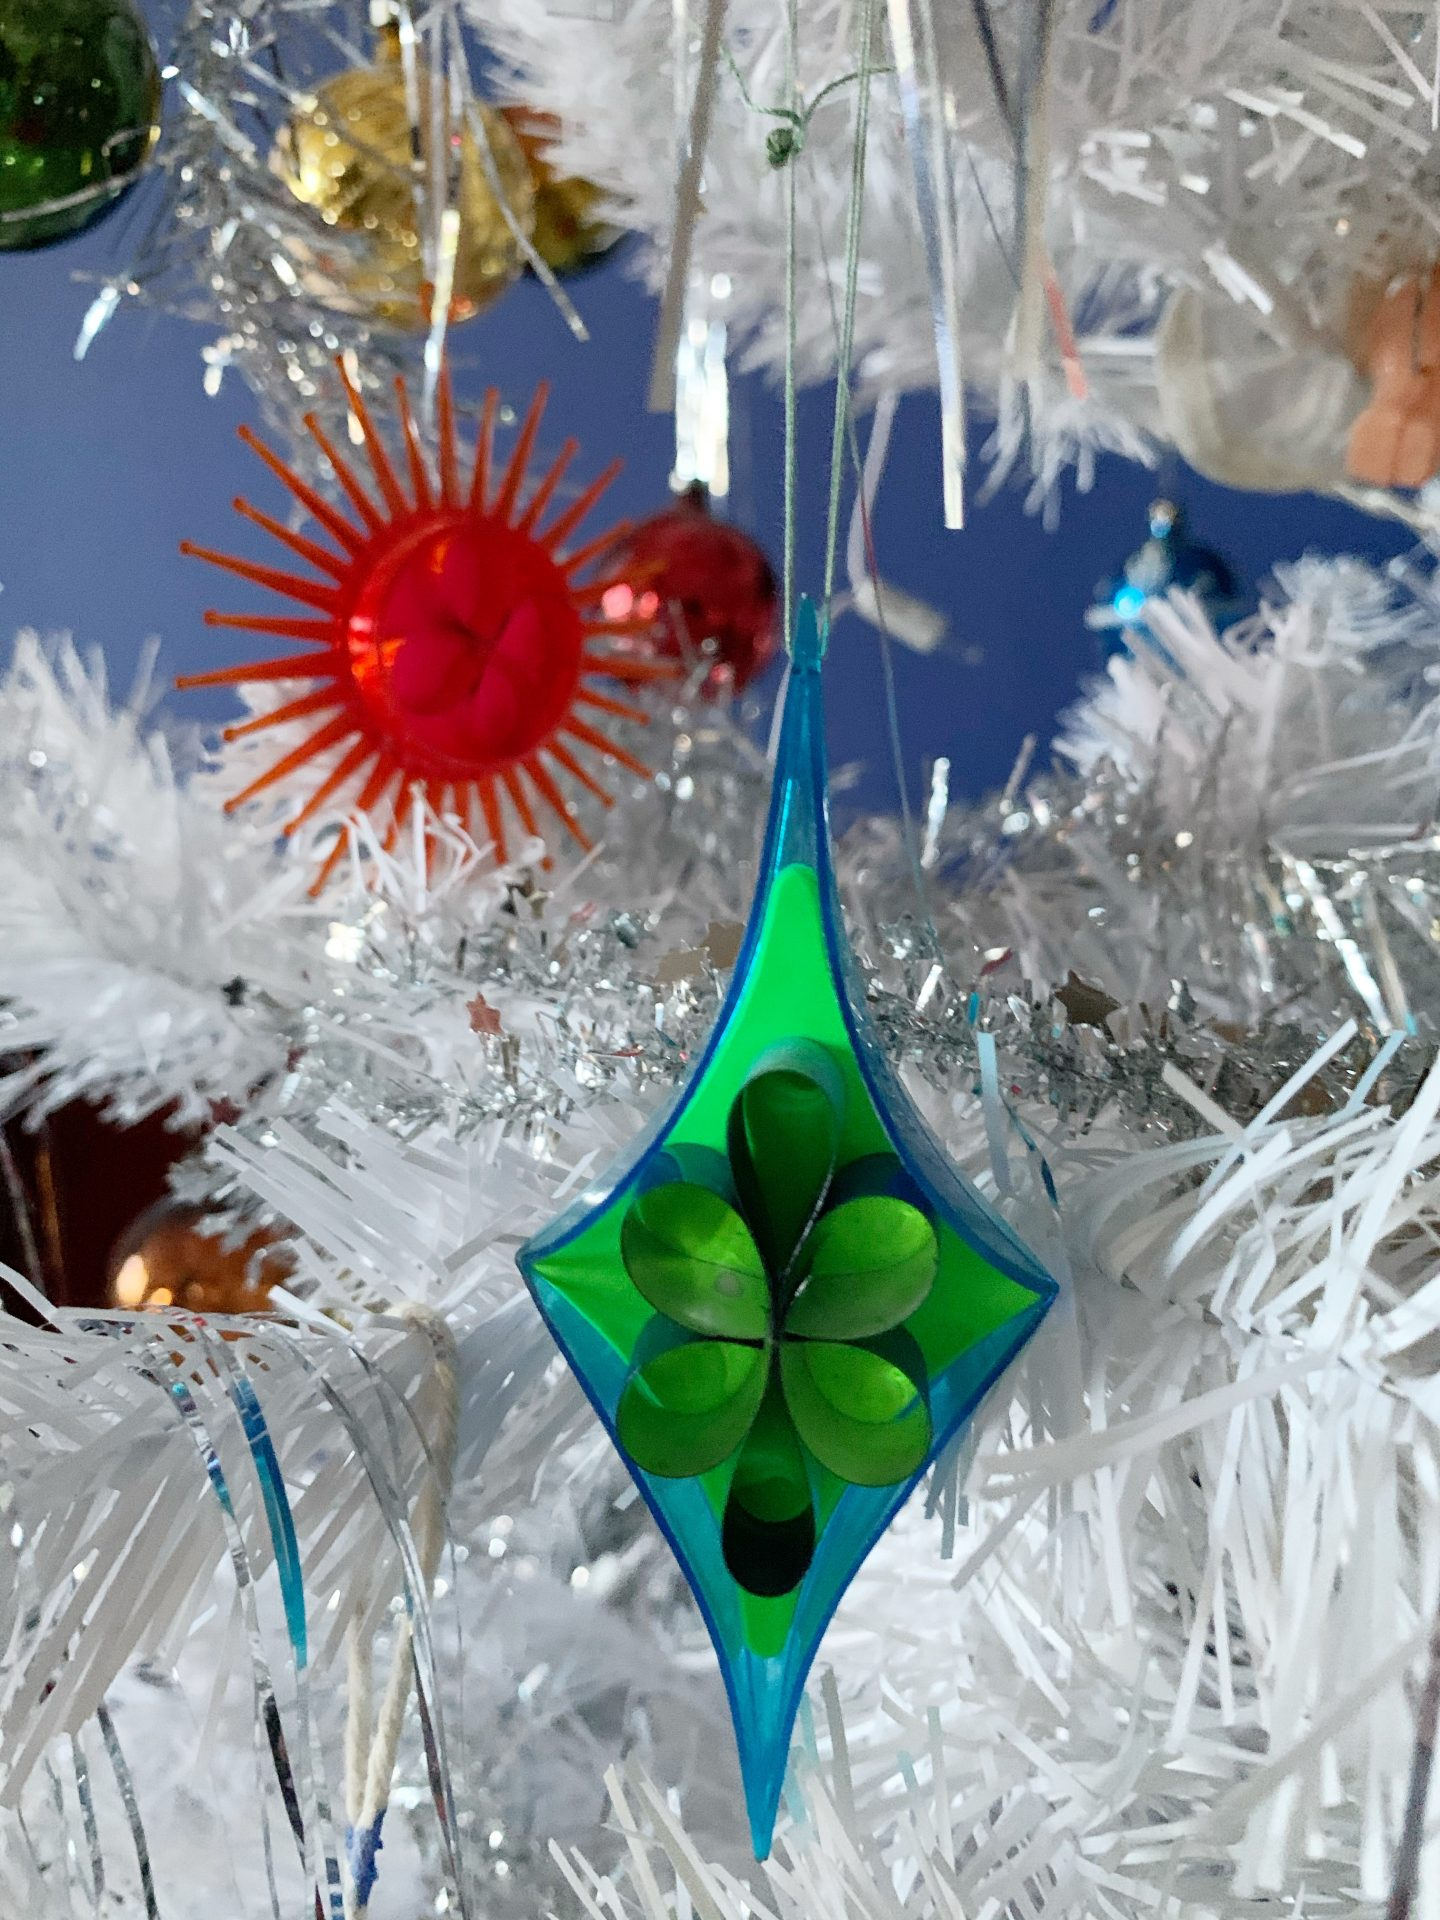 Our Vintage Christmas Decorations with white tree and blue fairy